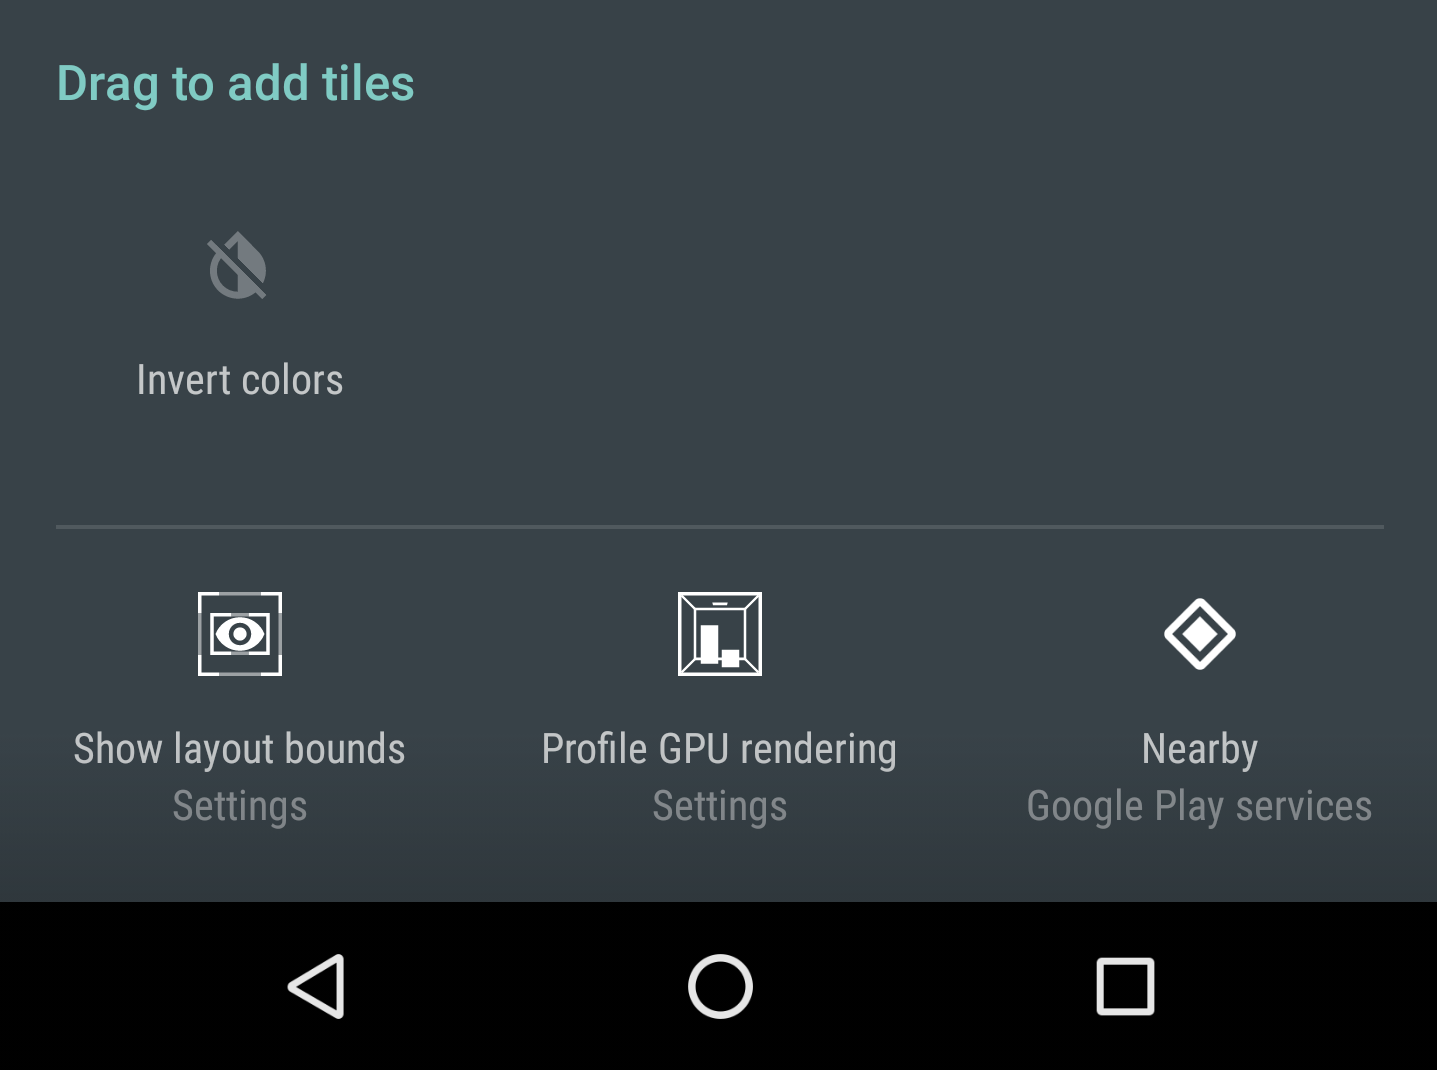 Google Play Services v9 6 adds Nearby quick settings tile